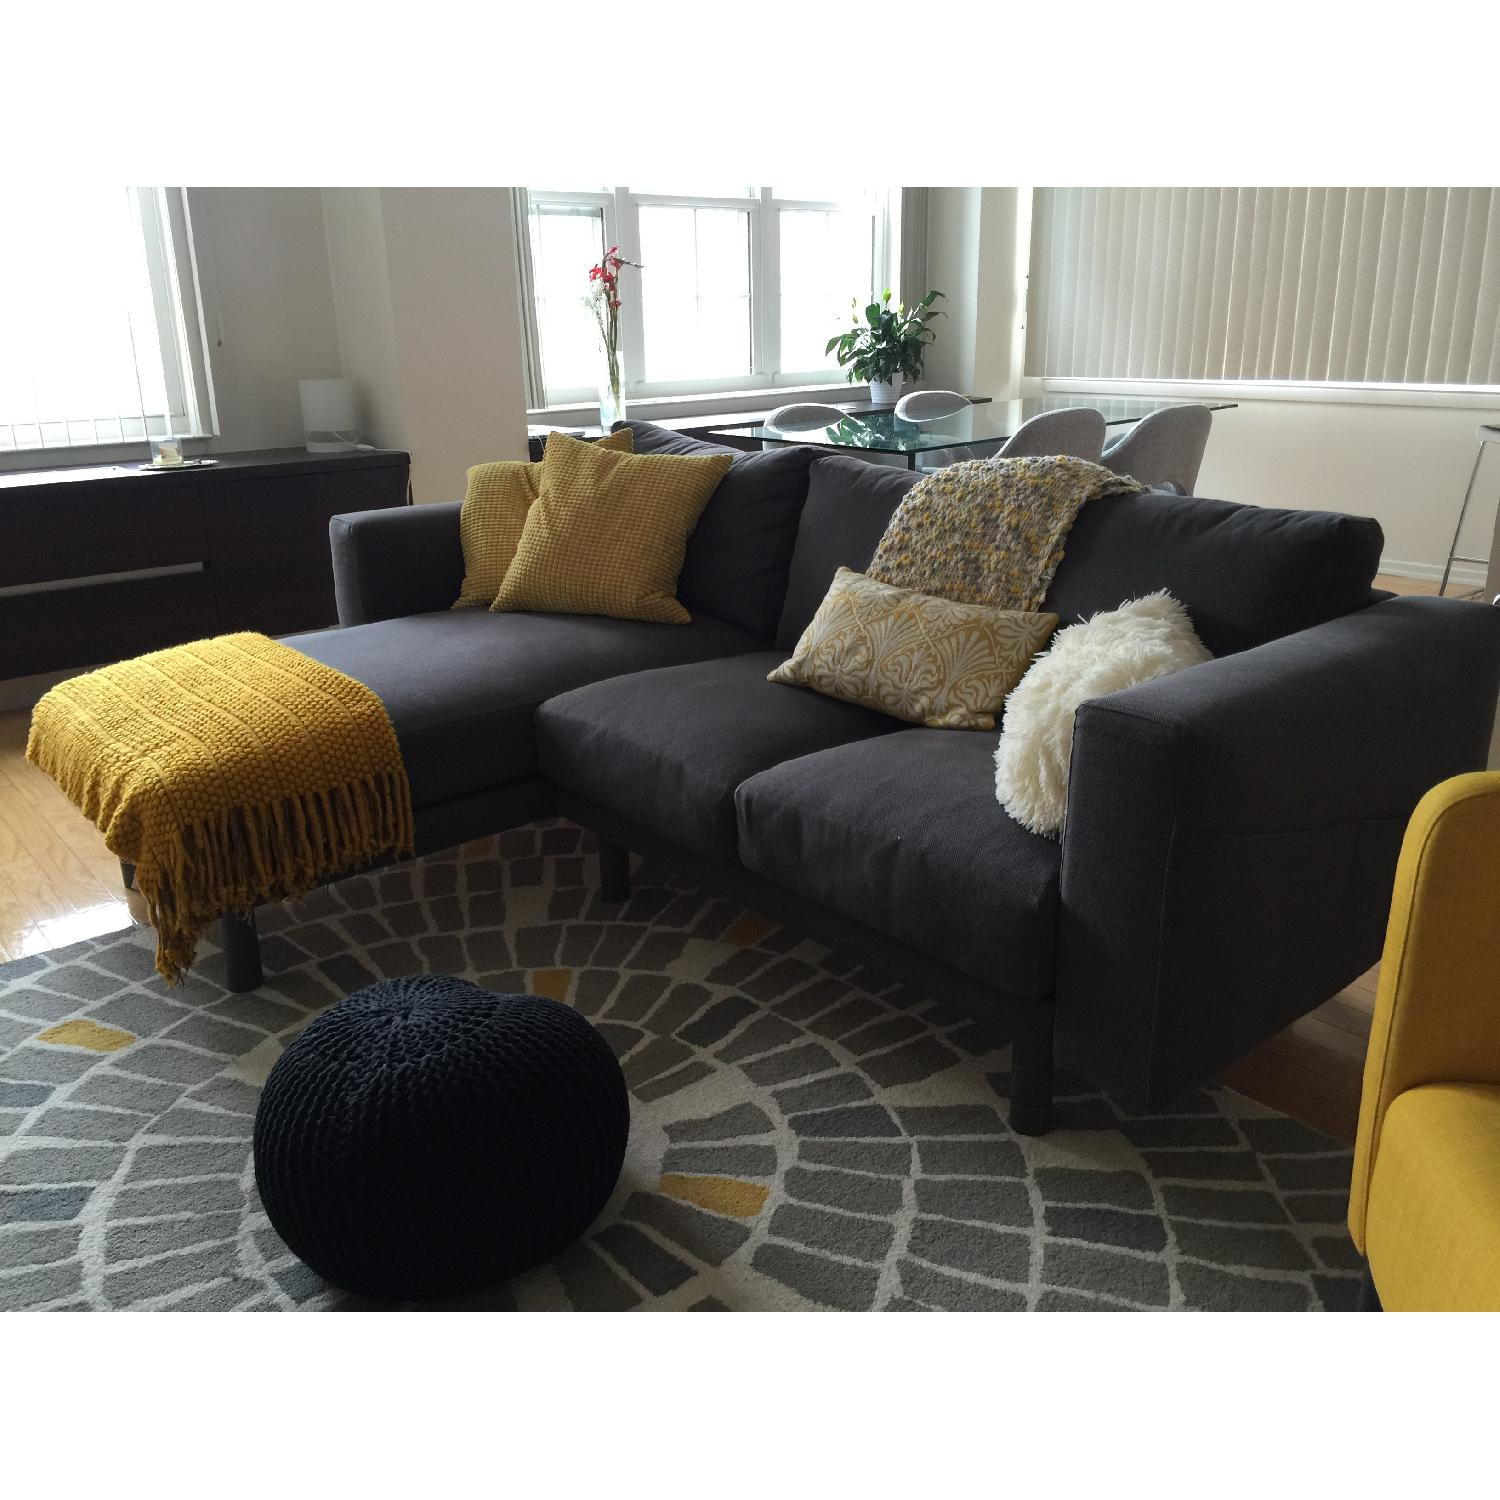 Ikea Sectional Couch - image-1